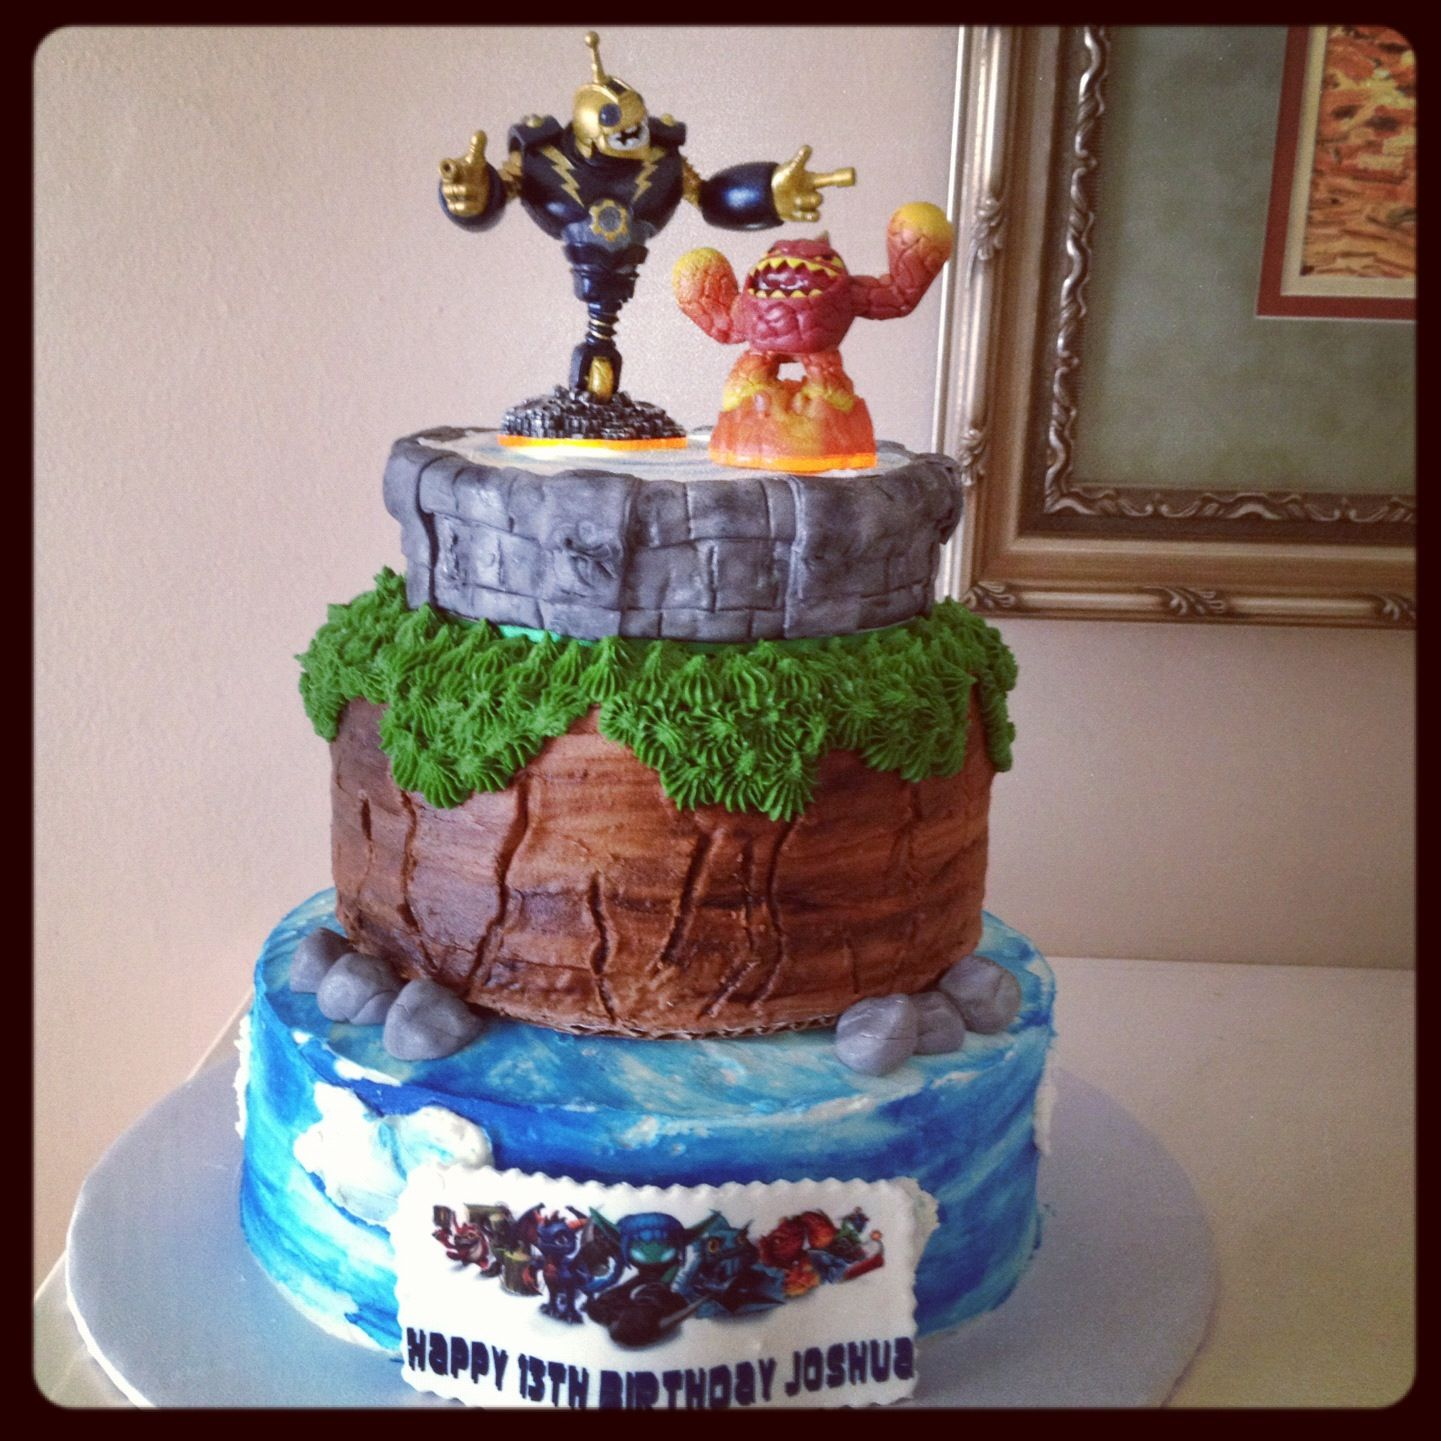 Incredible Skylanders Birthday Cake Skylanders Birthday Skylanders Funny Birthday Cards Online Inifofree Goldxyz